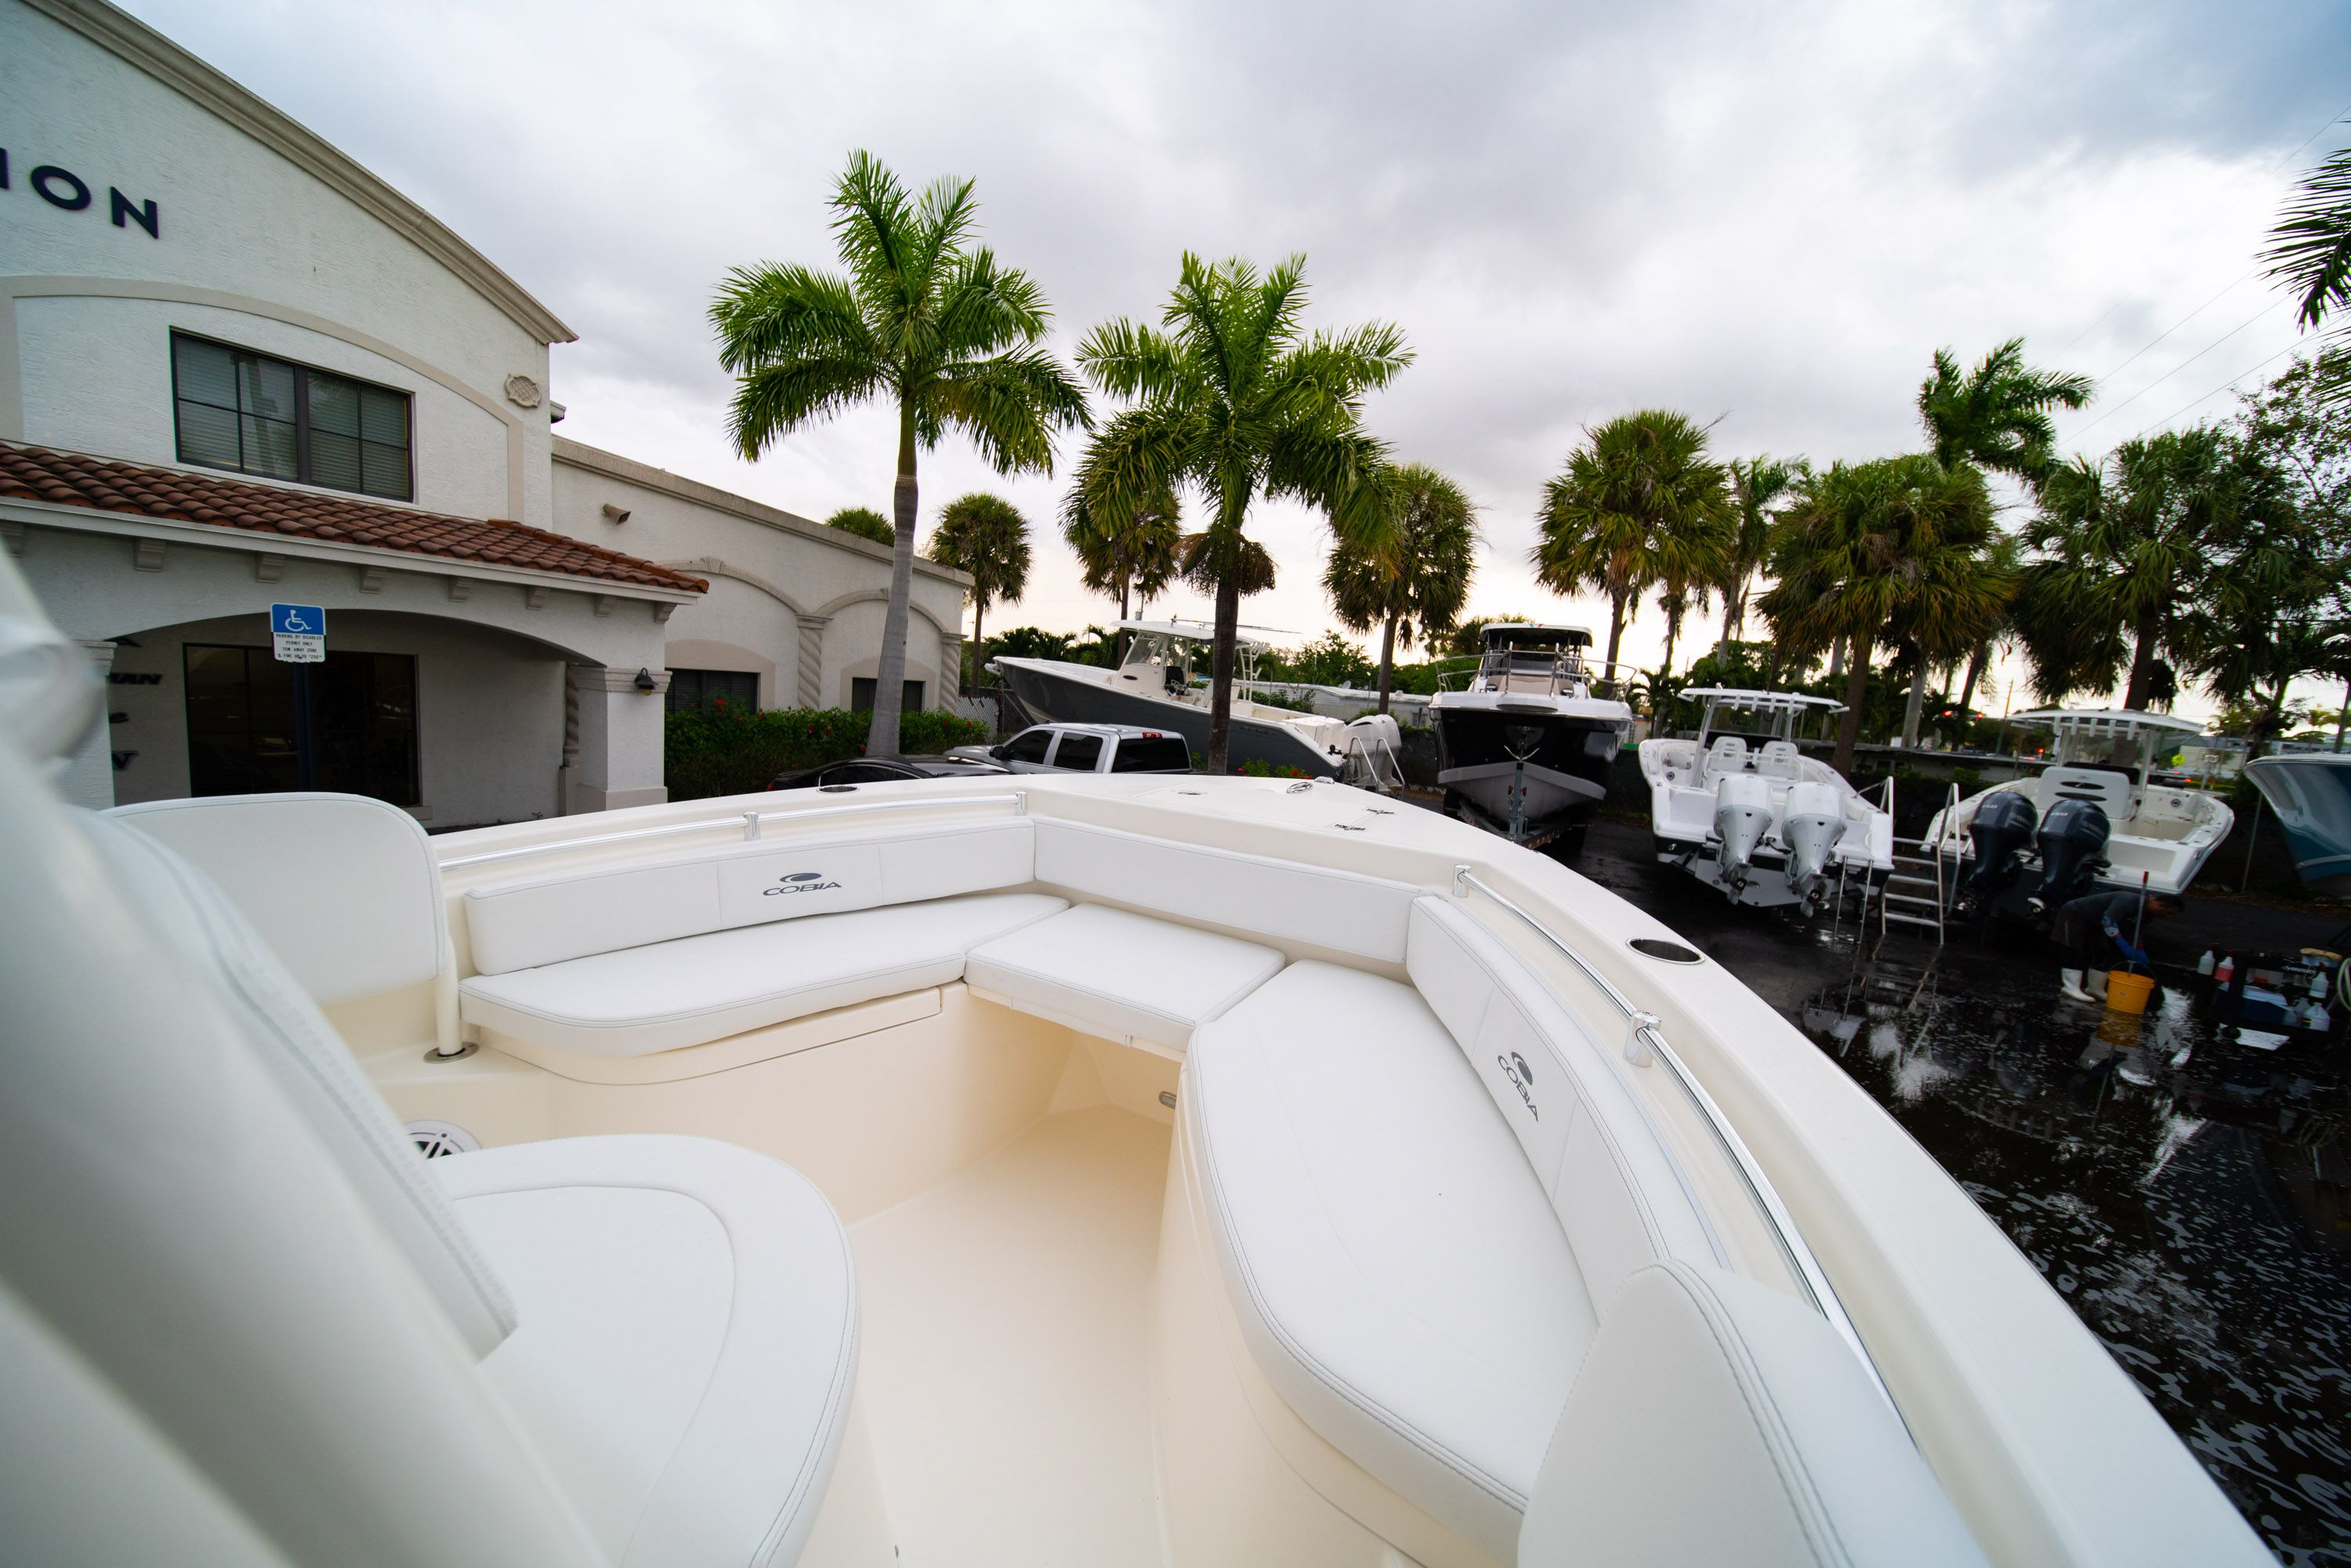 Thumbnail 29 for New 2020 Cobia 201 CC Center Console boat for sale in West Palm Beach, FL